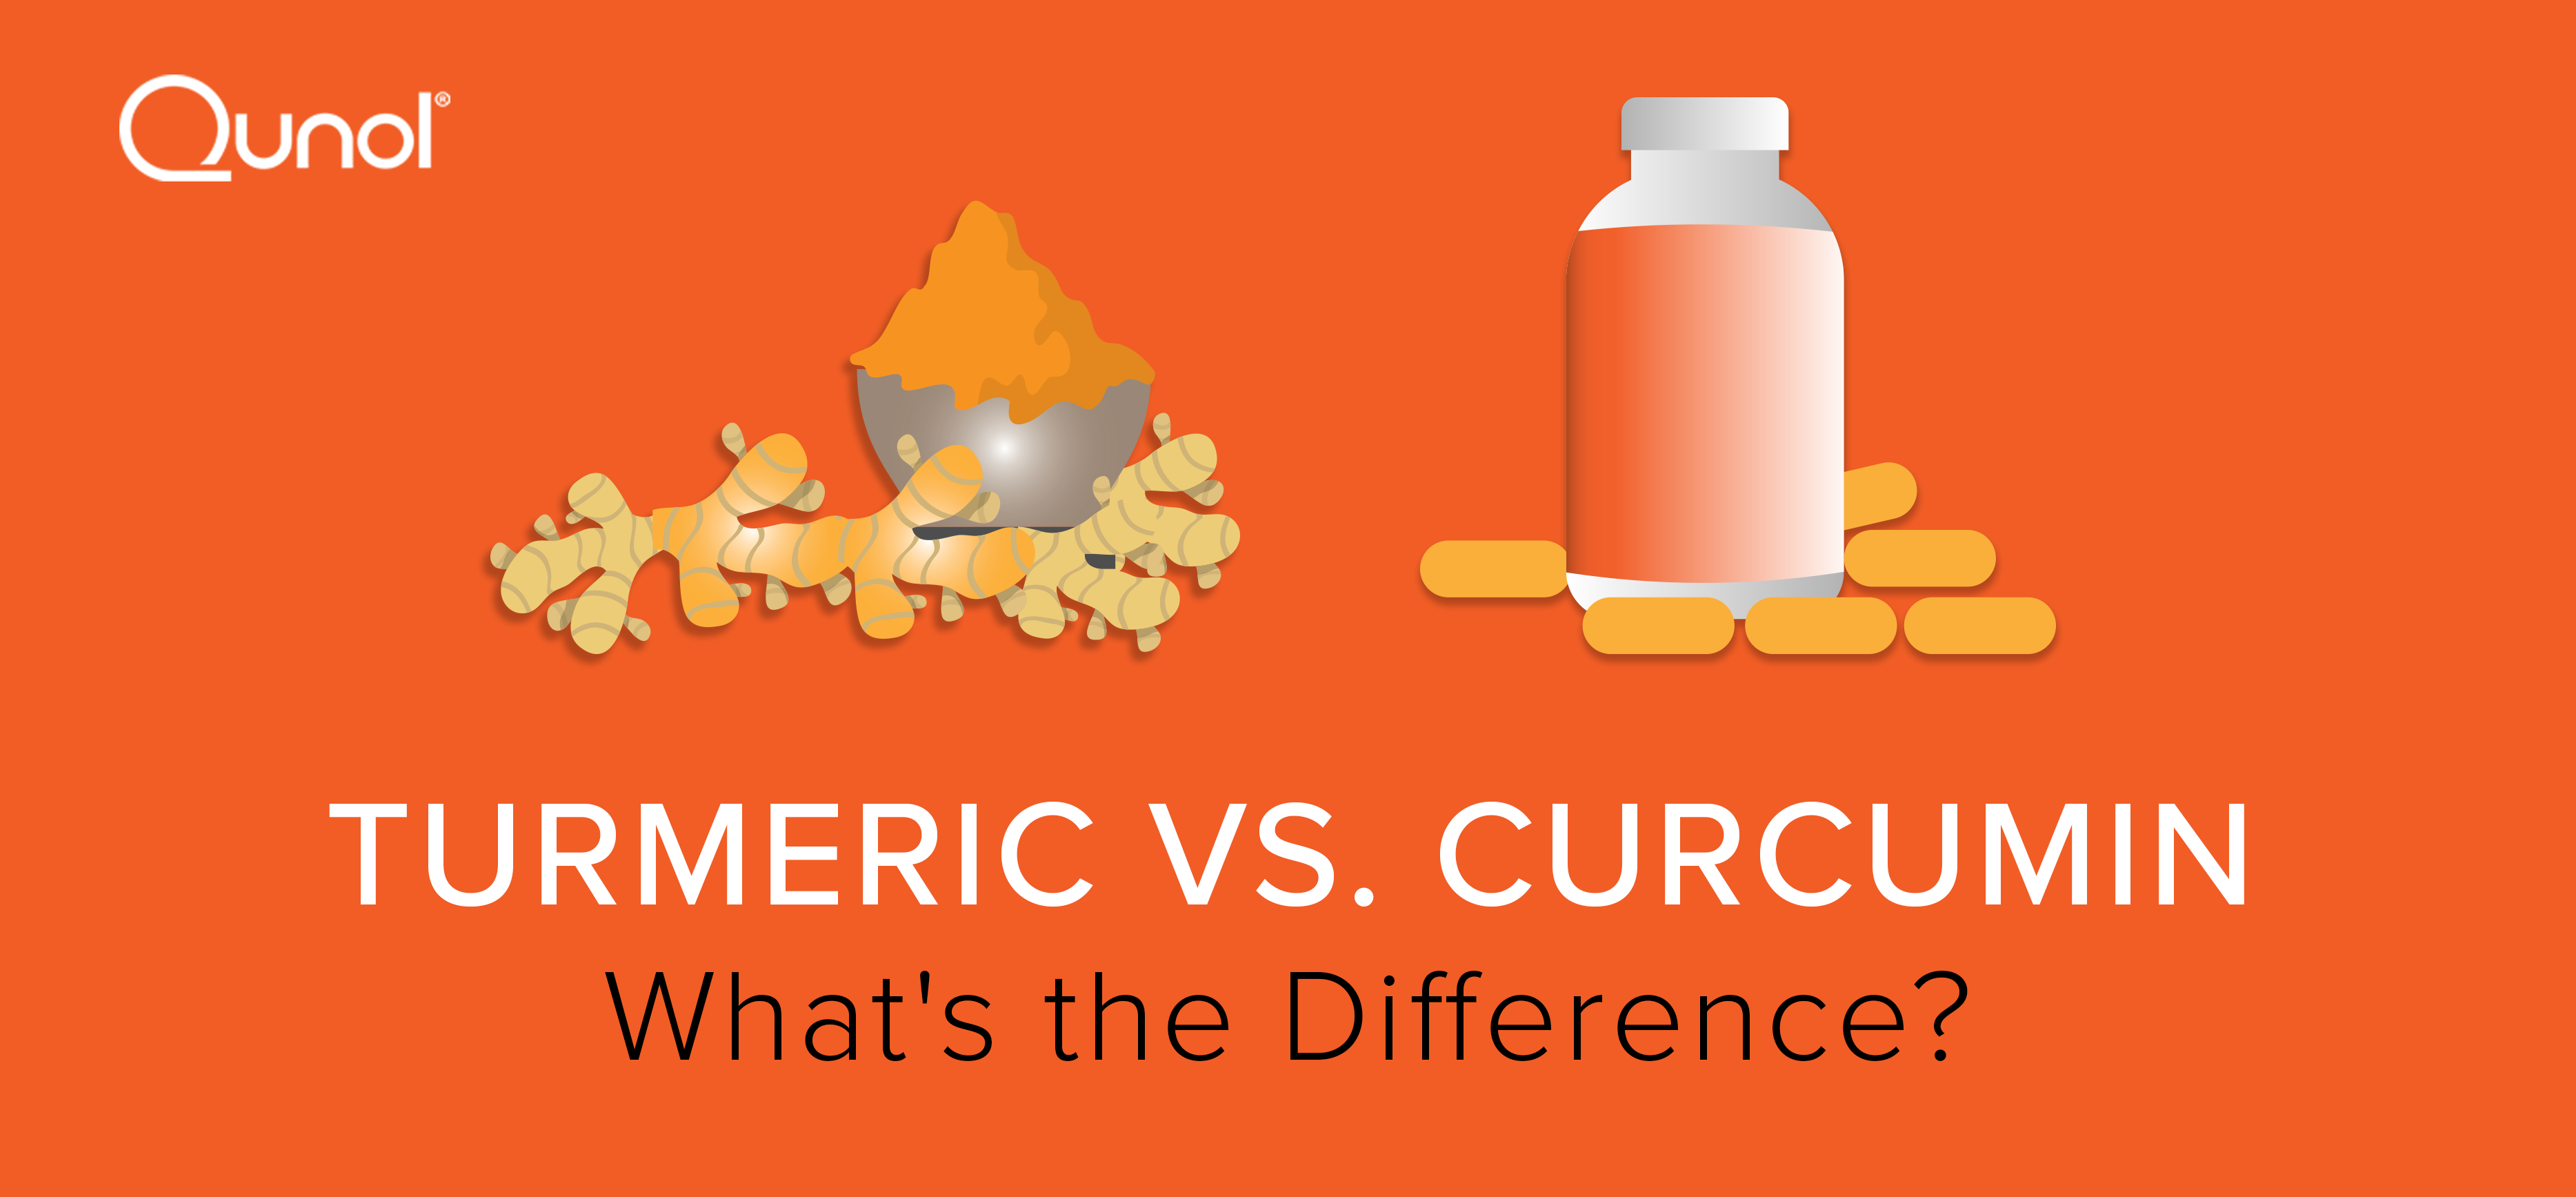 Turmeric vs. Curcumin: What's the Difference?